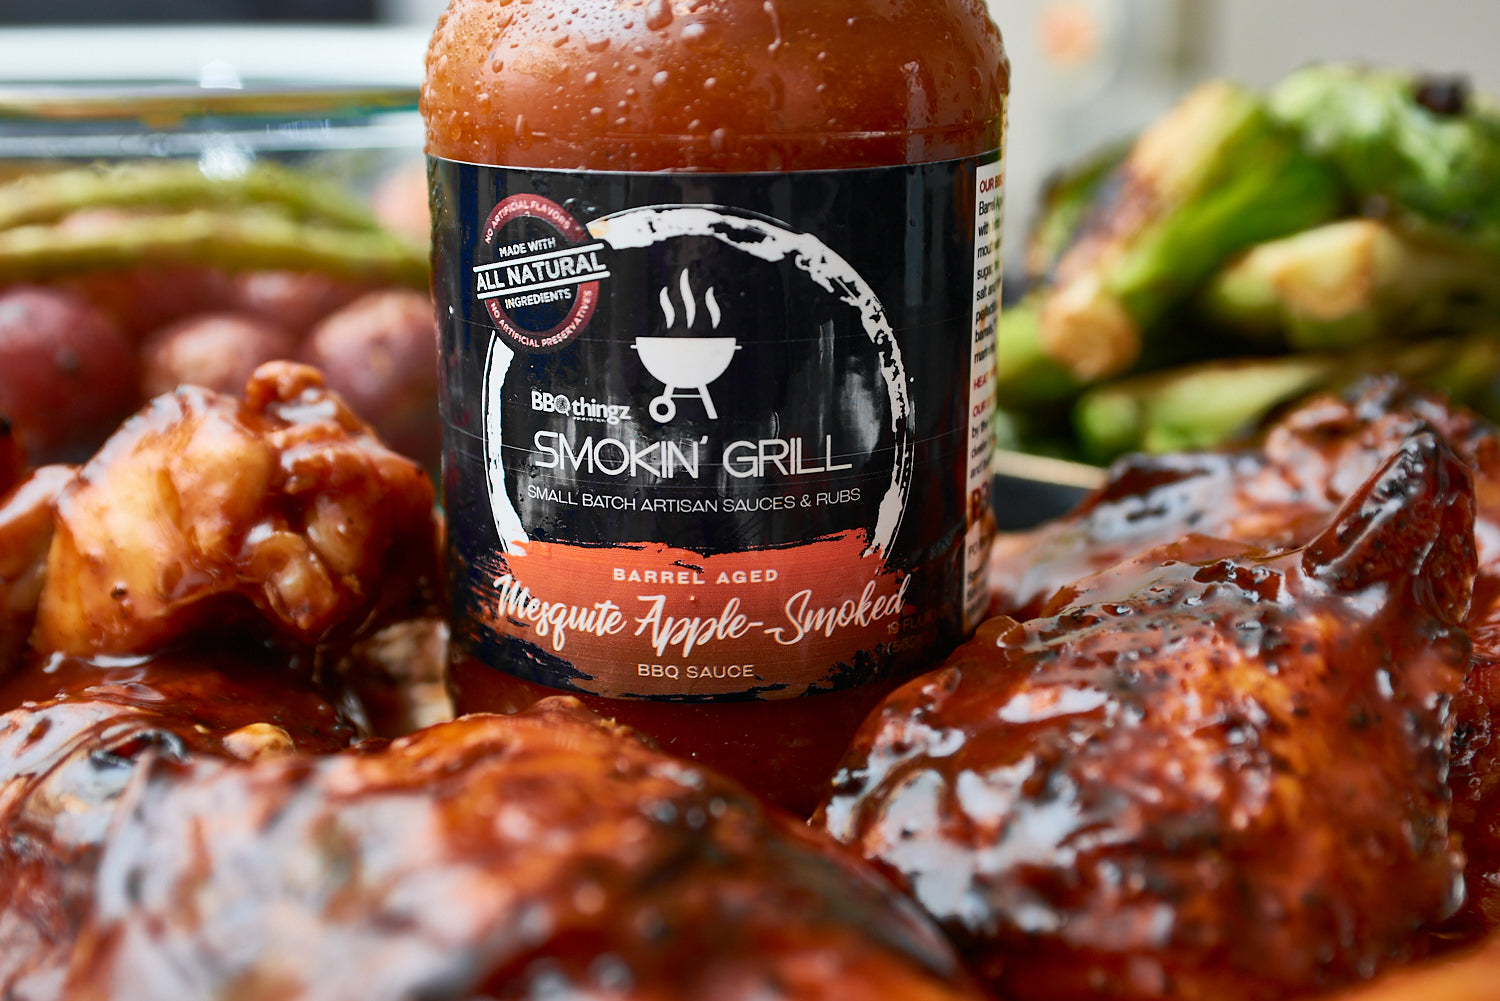 Mesquite Apple-Smoked, Barrel Aged BBQ Sauce Bakell